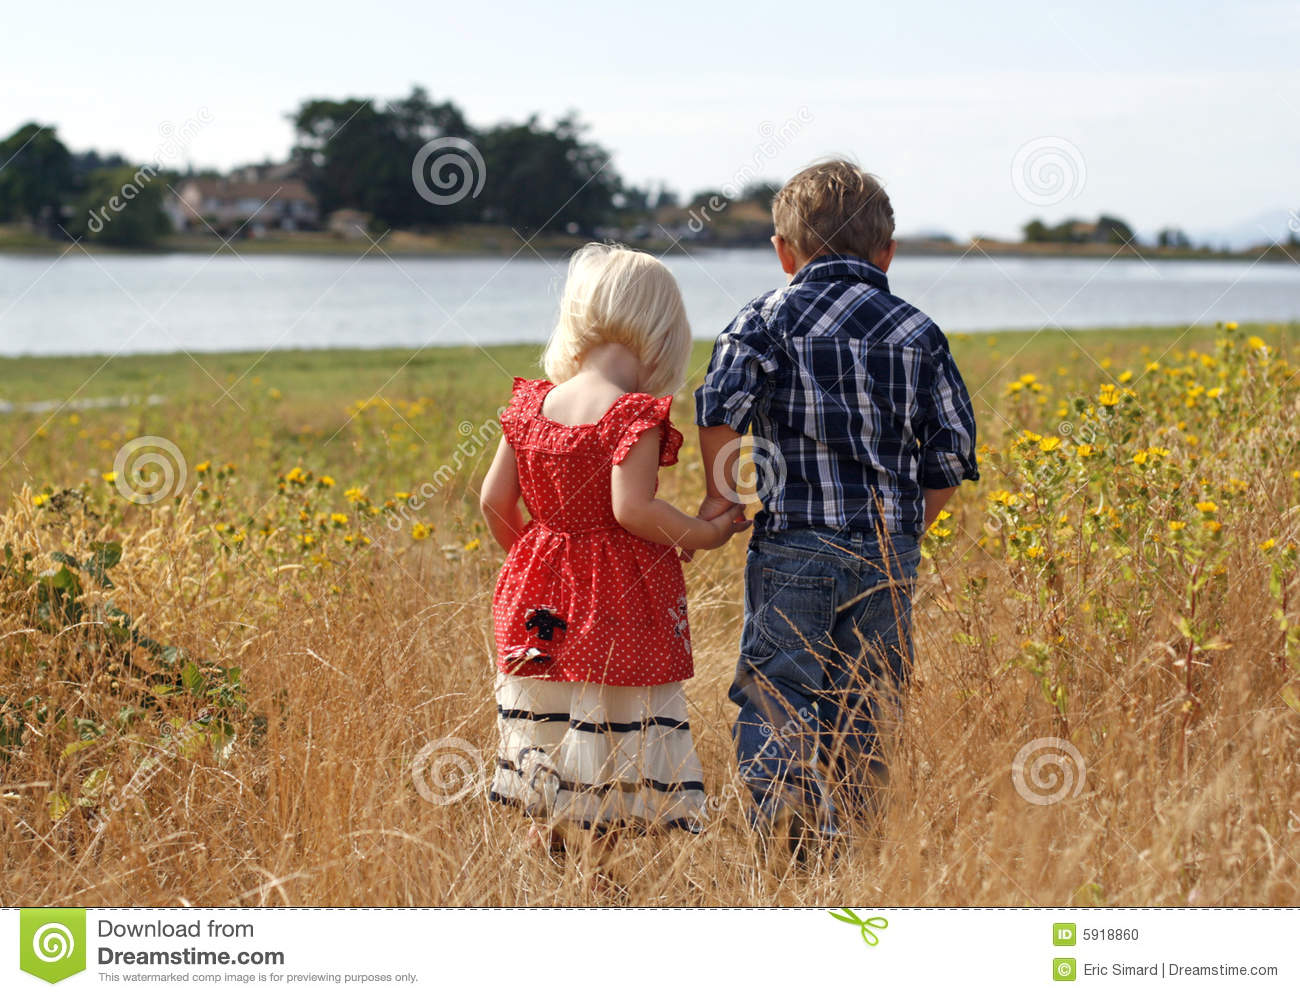 Cute Little Boy And Girl Wallpapers Cute Little Girl And Boy Holding Hands Stock Photo Image